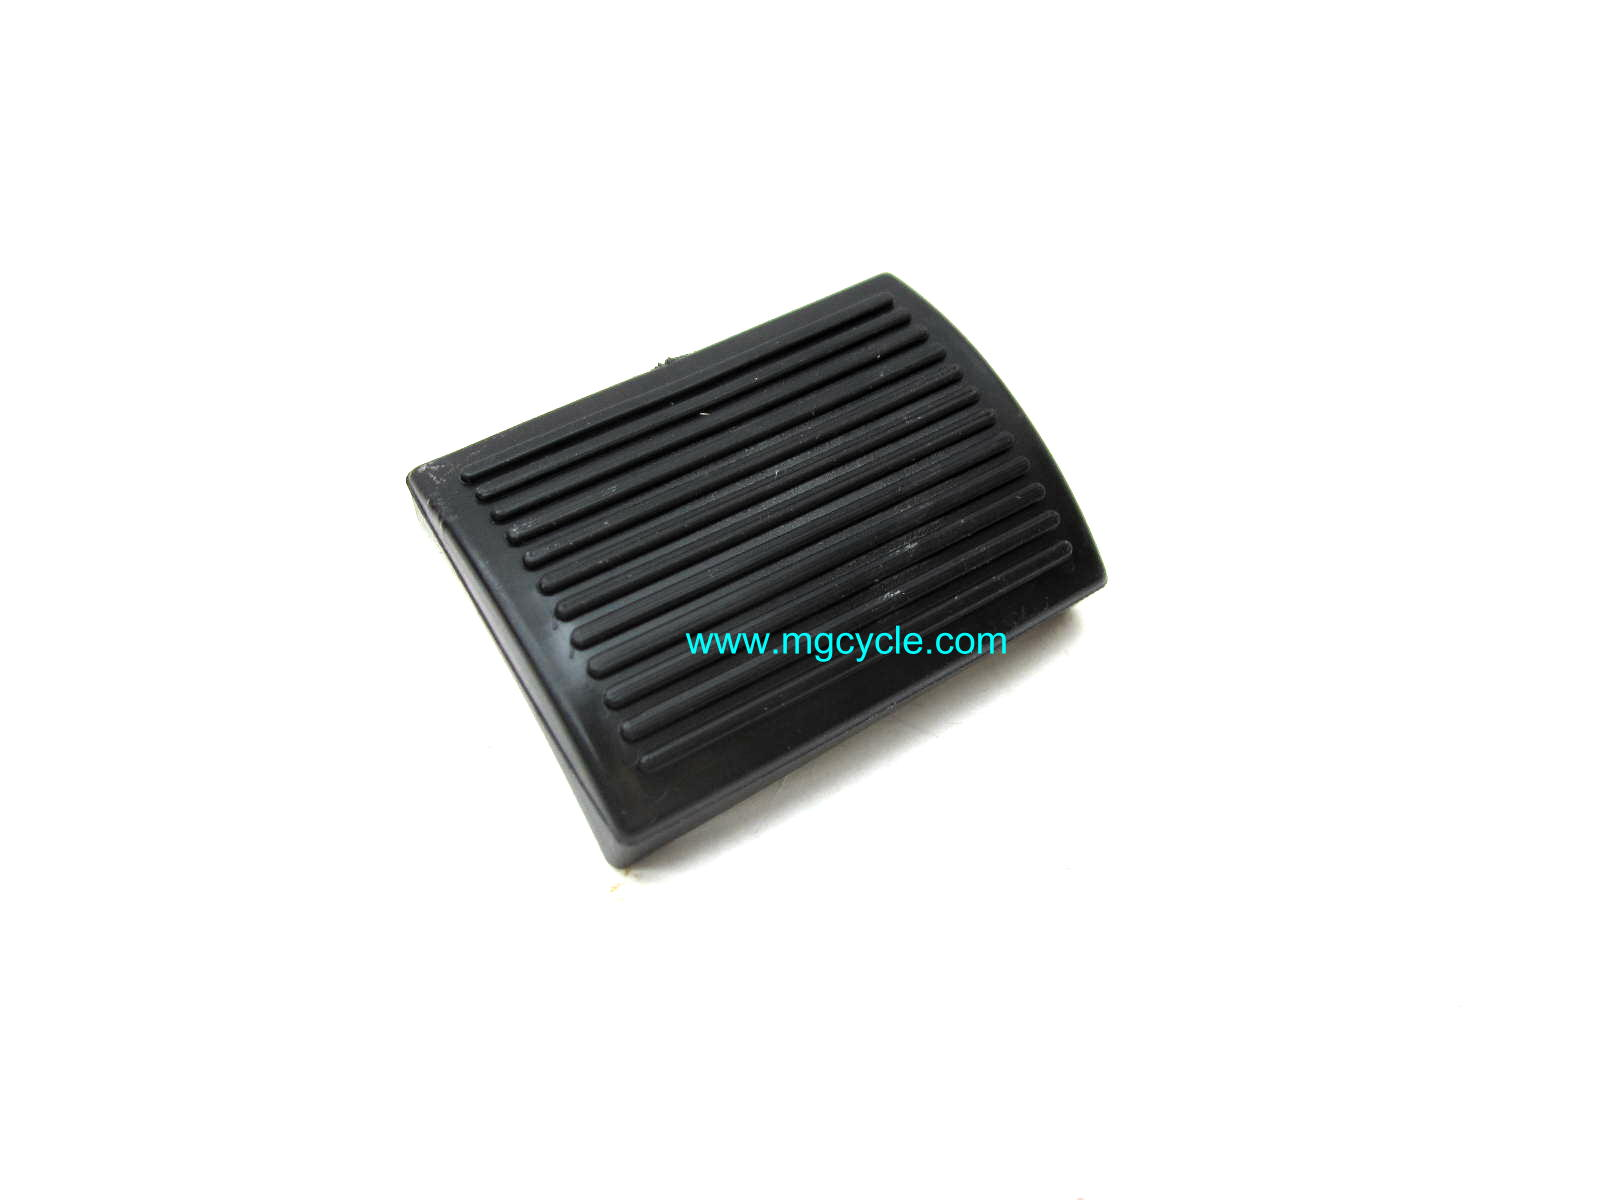 square brake pedal rubber, many floorboard models and G5 etc